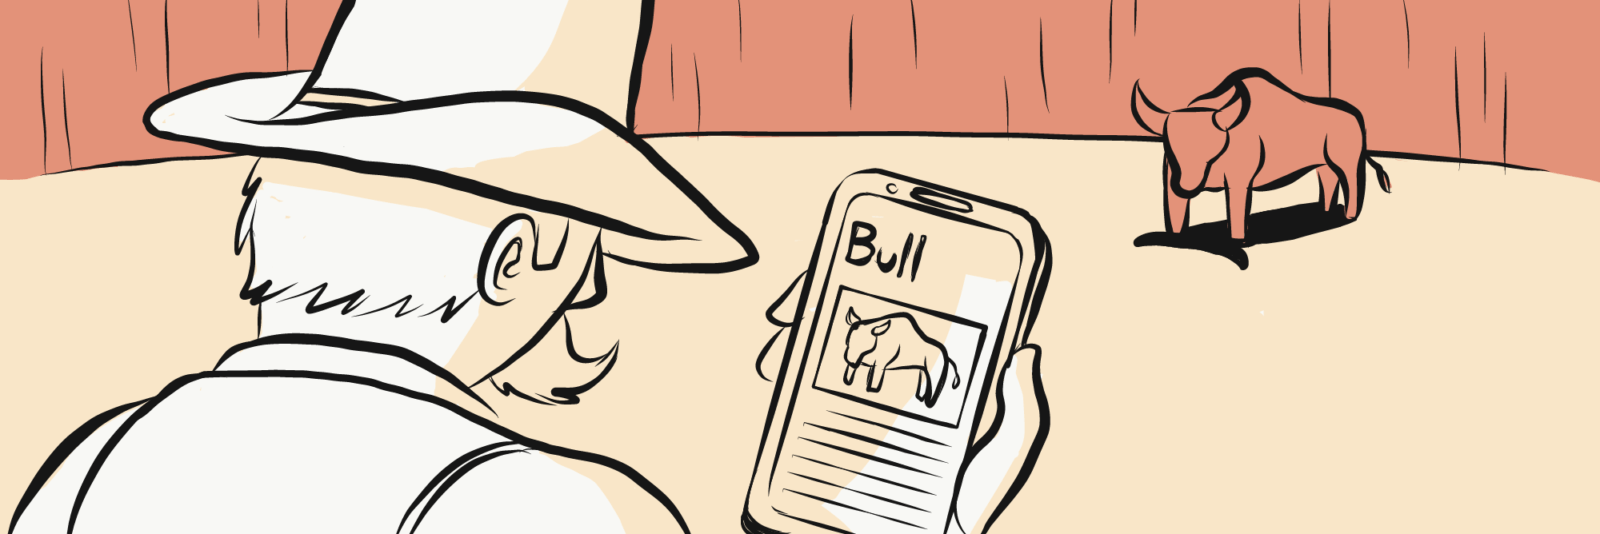 """A cowboy looking at his phone with """"Bull"""" on it, with a bull watching in the background"""